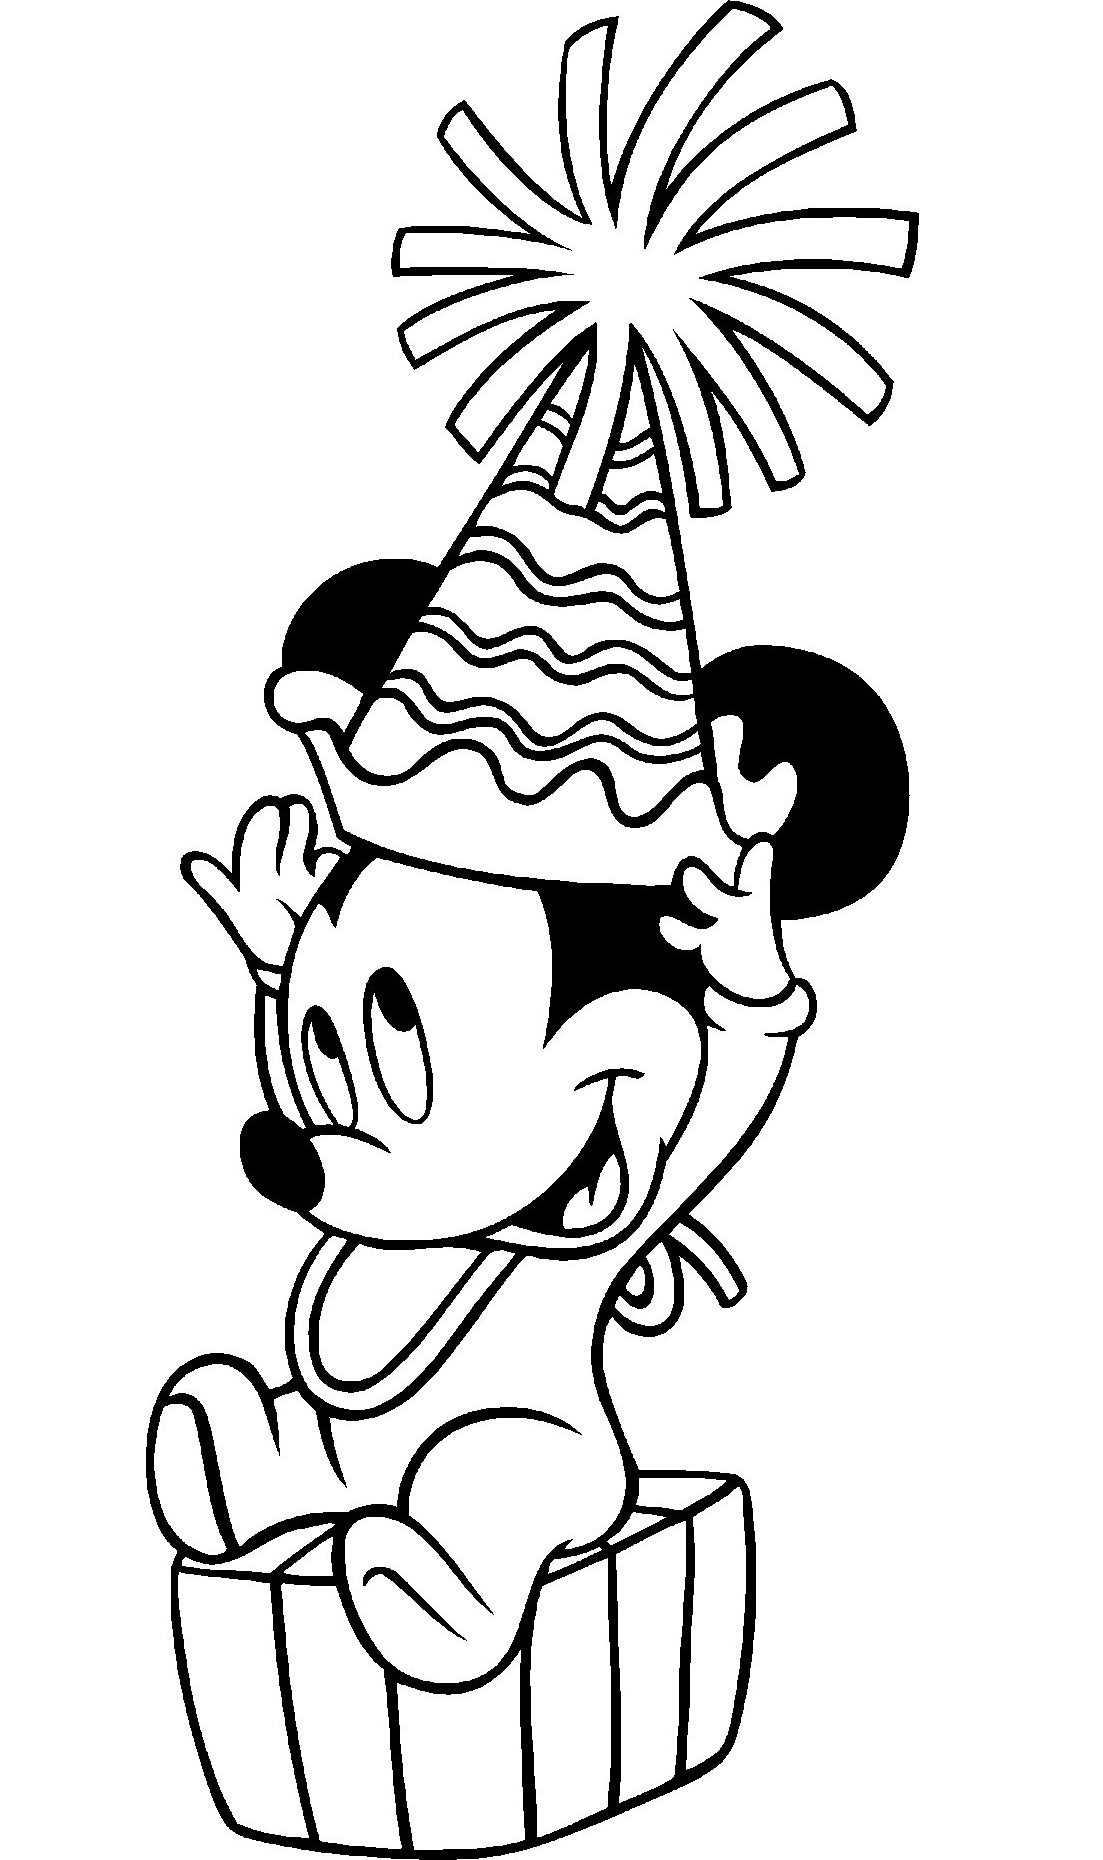 mickey mouse birthday printable coloring pages ; Mickey-Mouse-Coloring-Pages-Printable